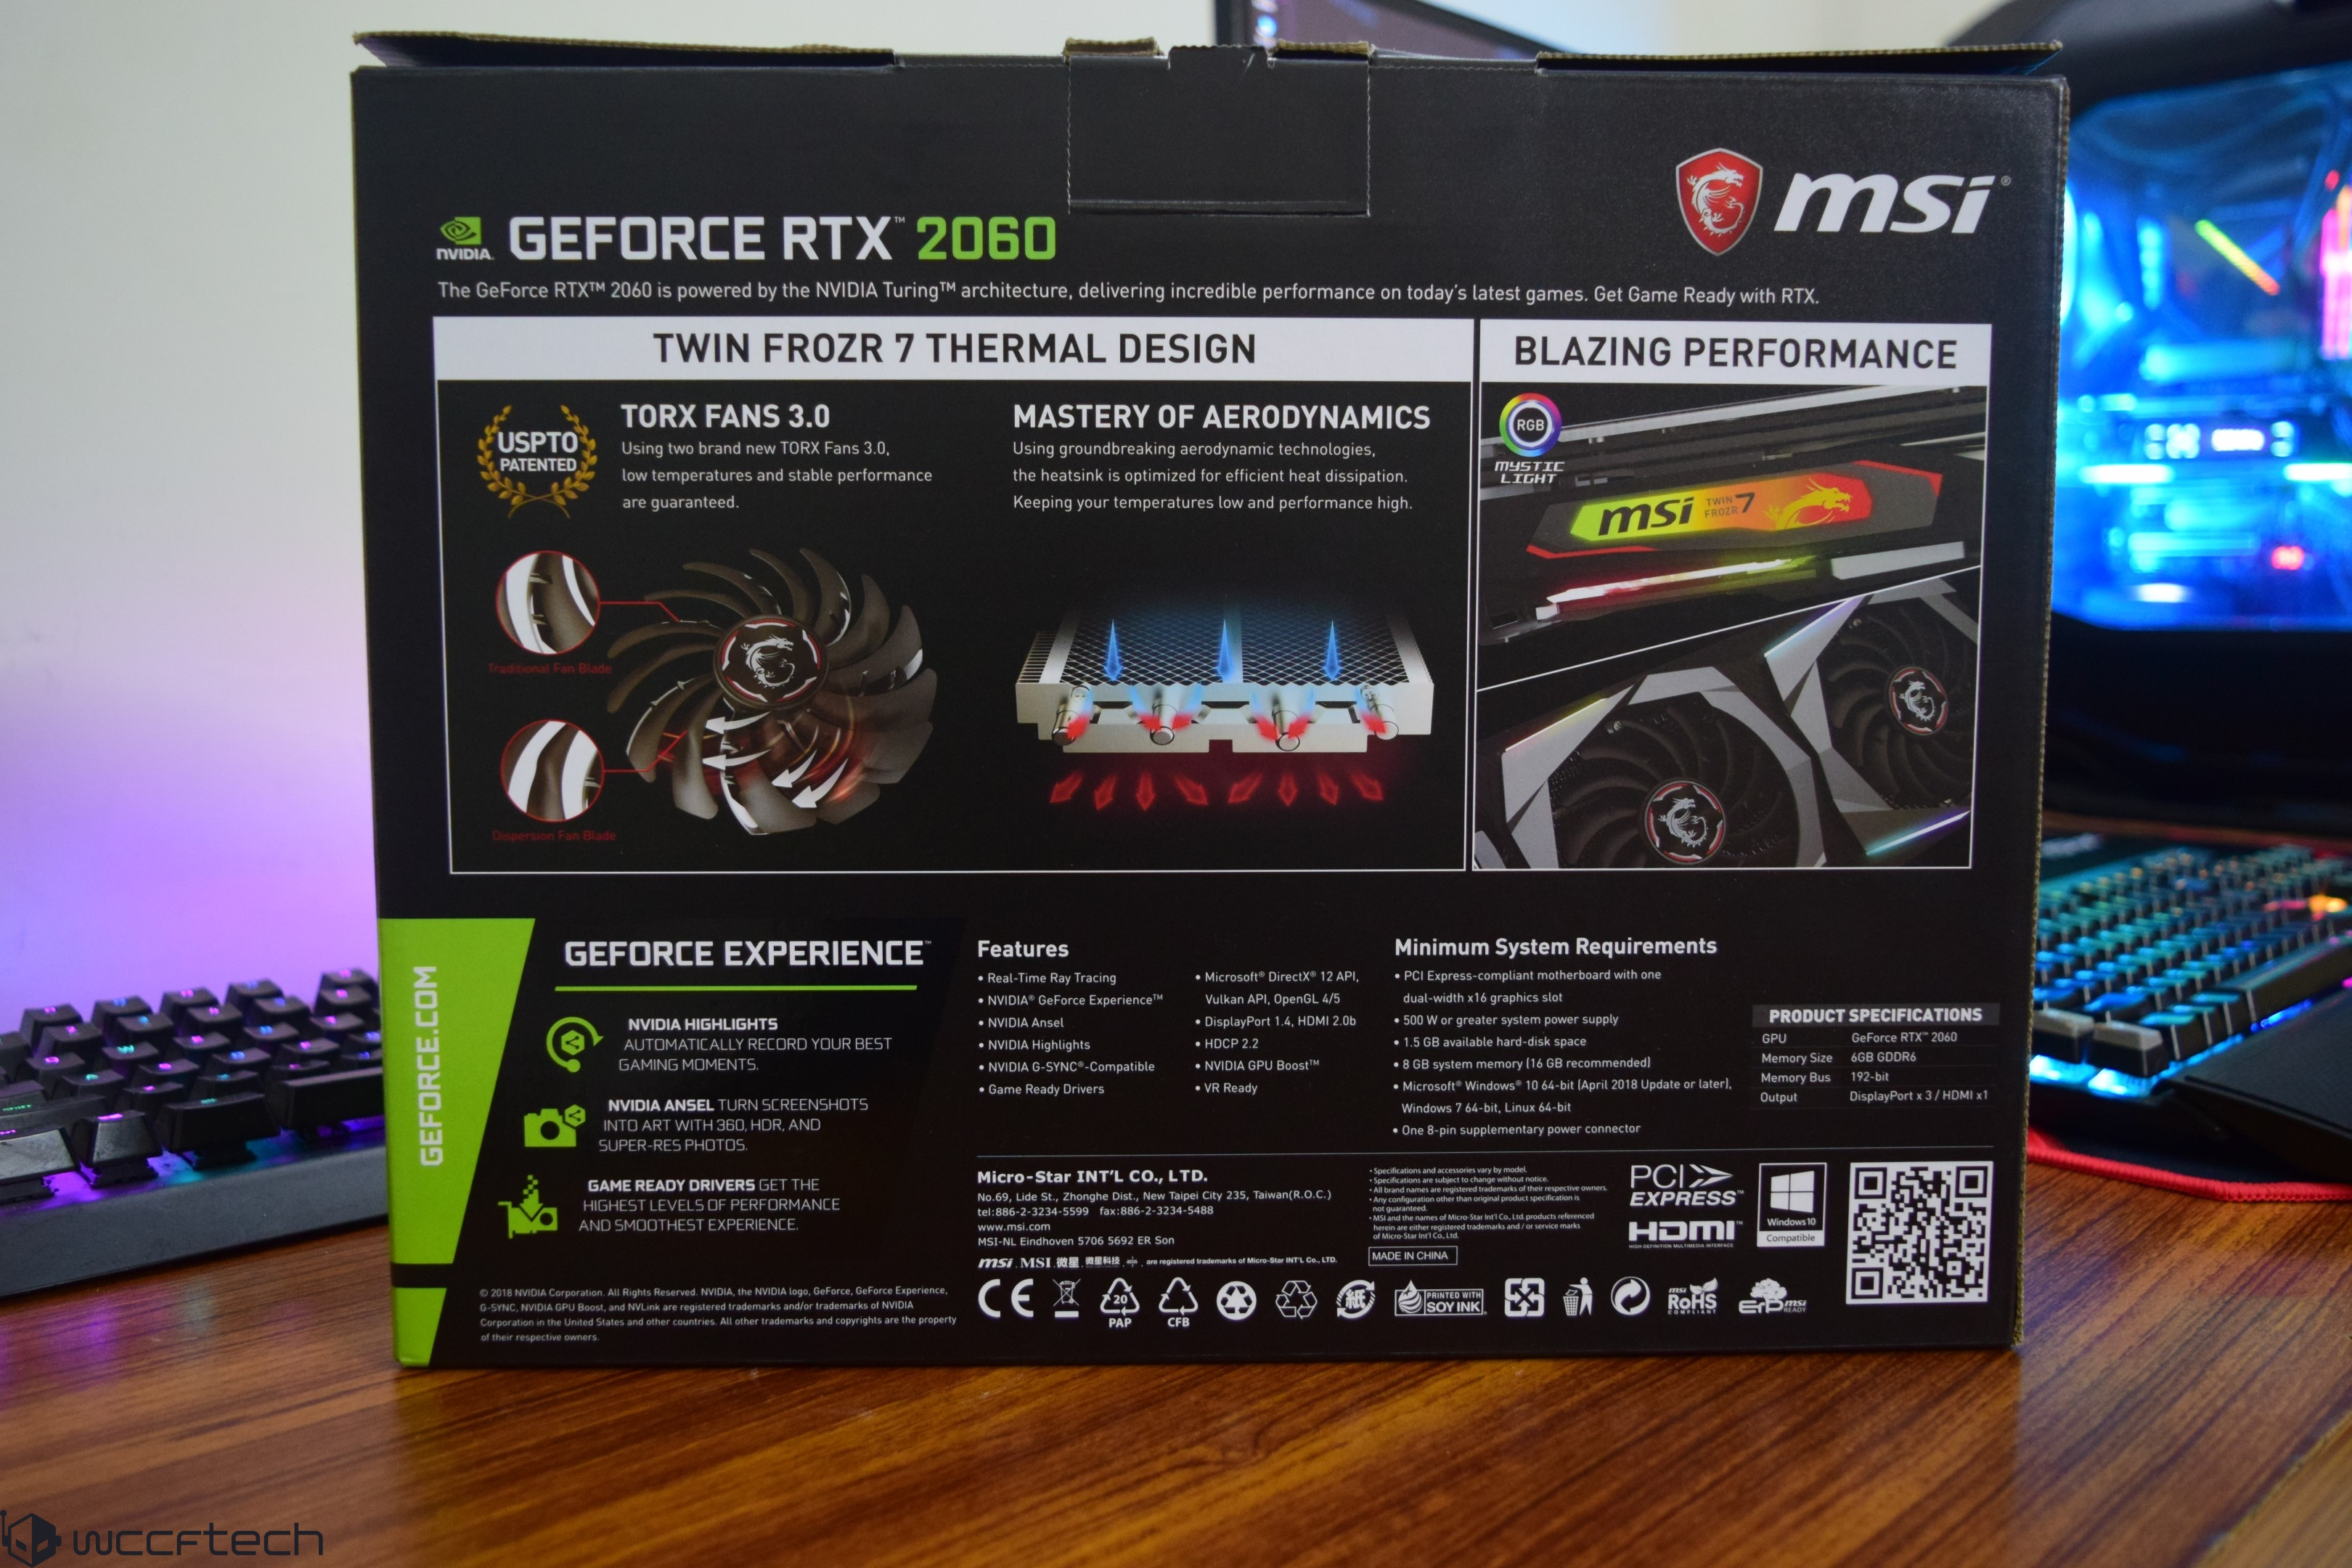 Msi graphics card performance booster скачать